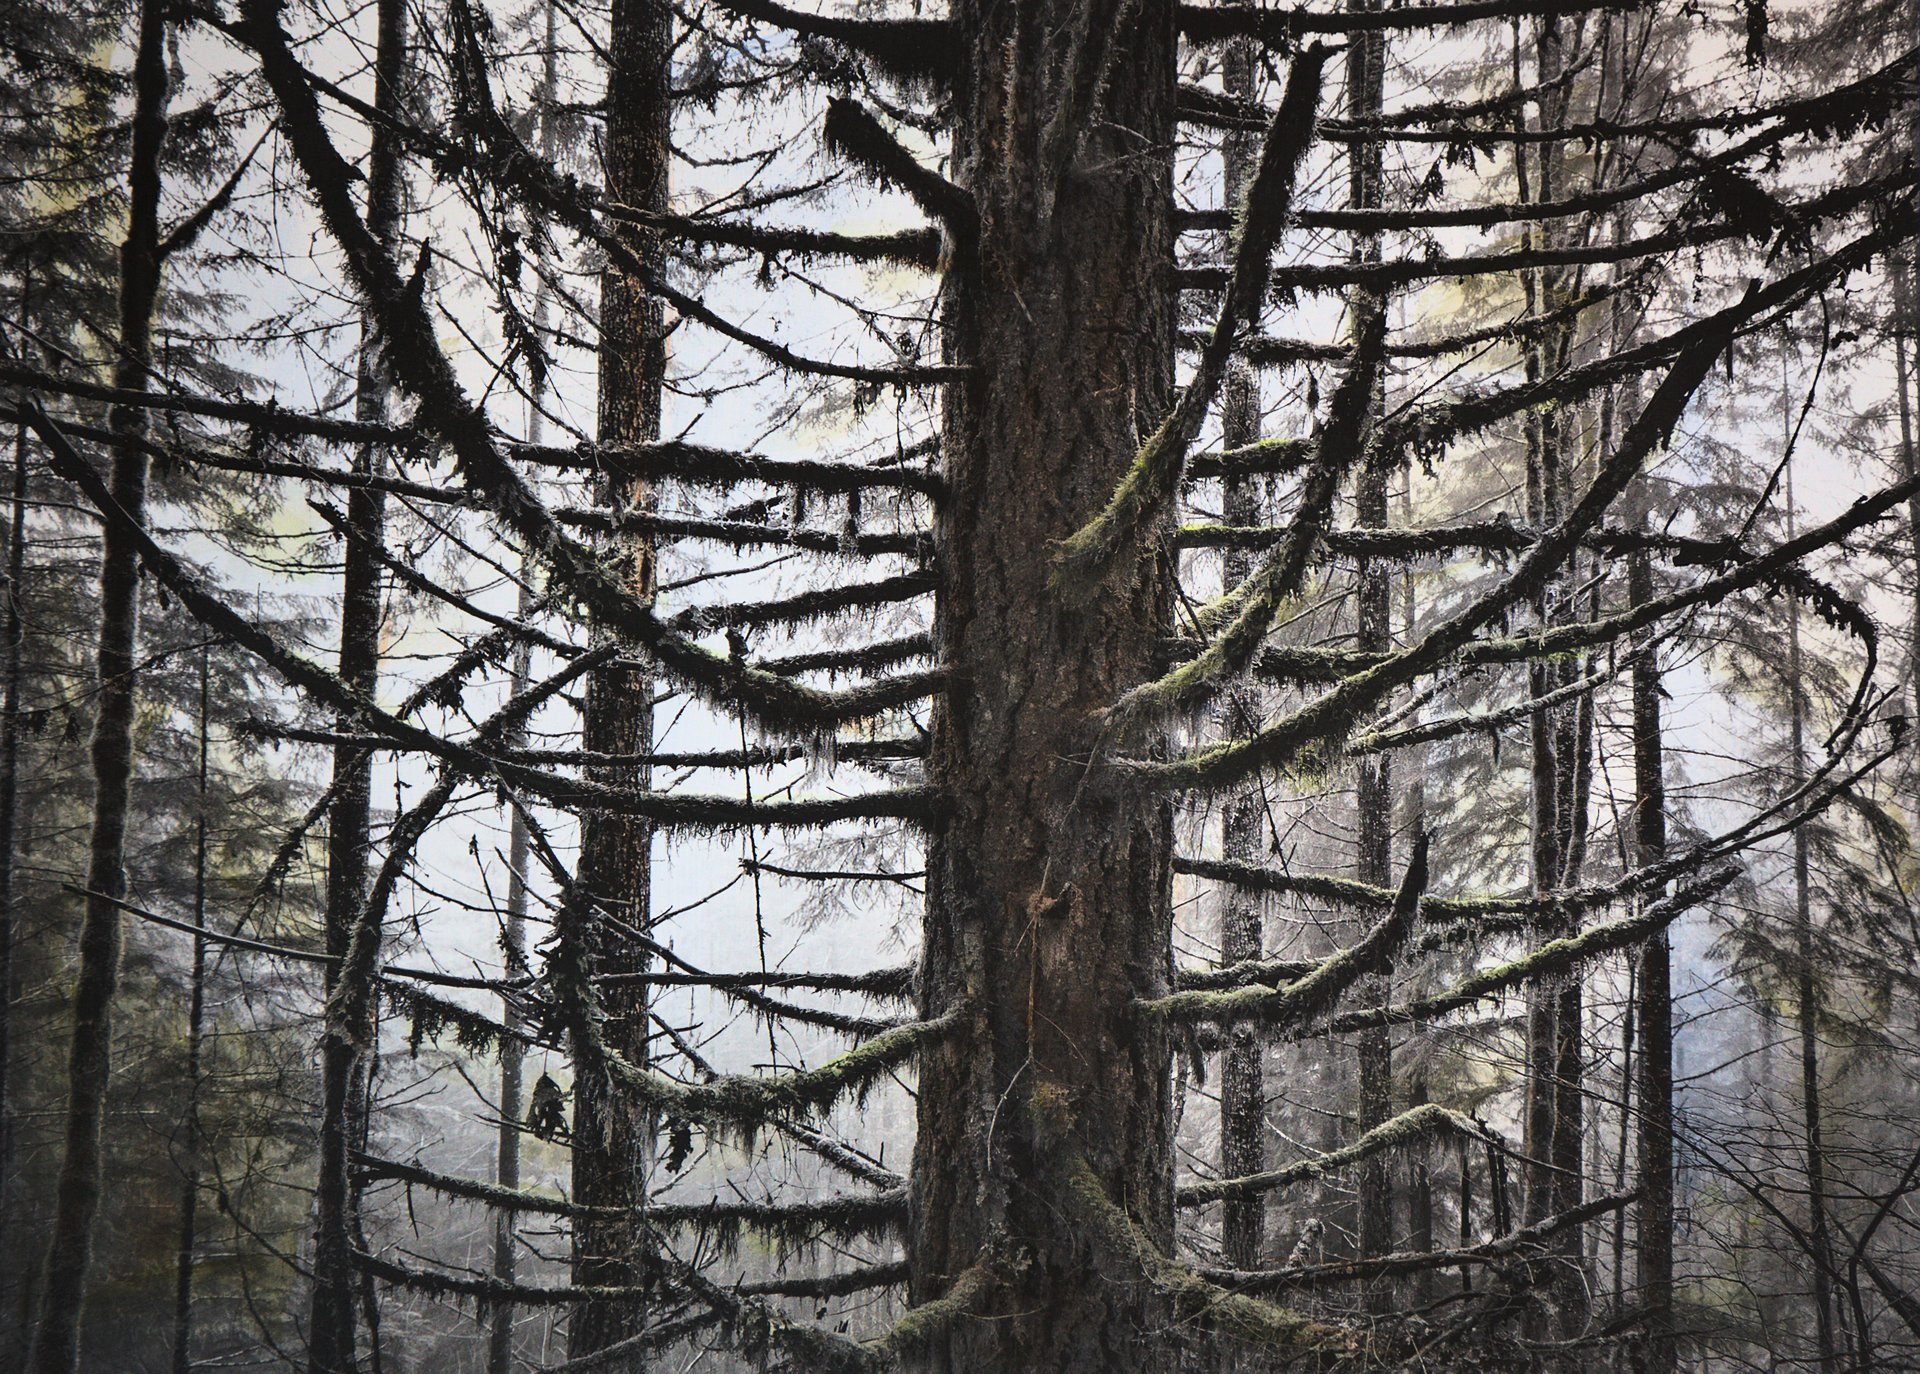 Fir Forest 2016.3 -- 22x30 inch hand colored photo